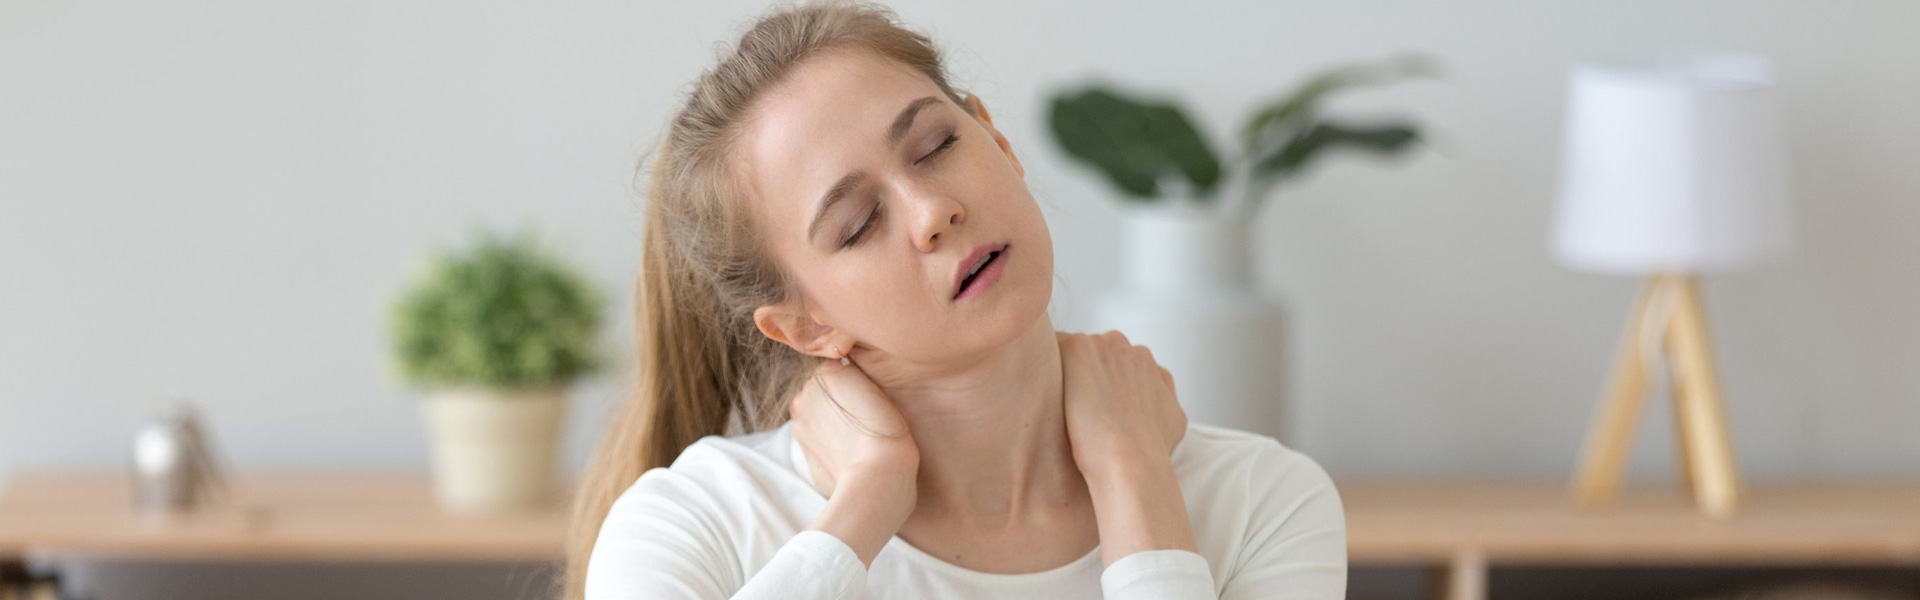 How to Deal with Tension Neck Syndrome Caused by Repetitive Computer Usage